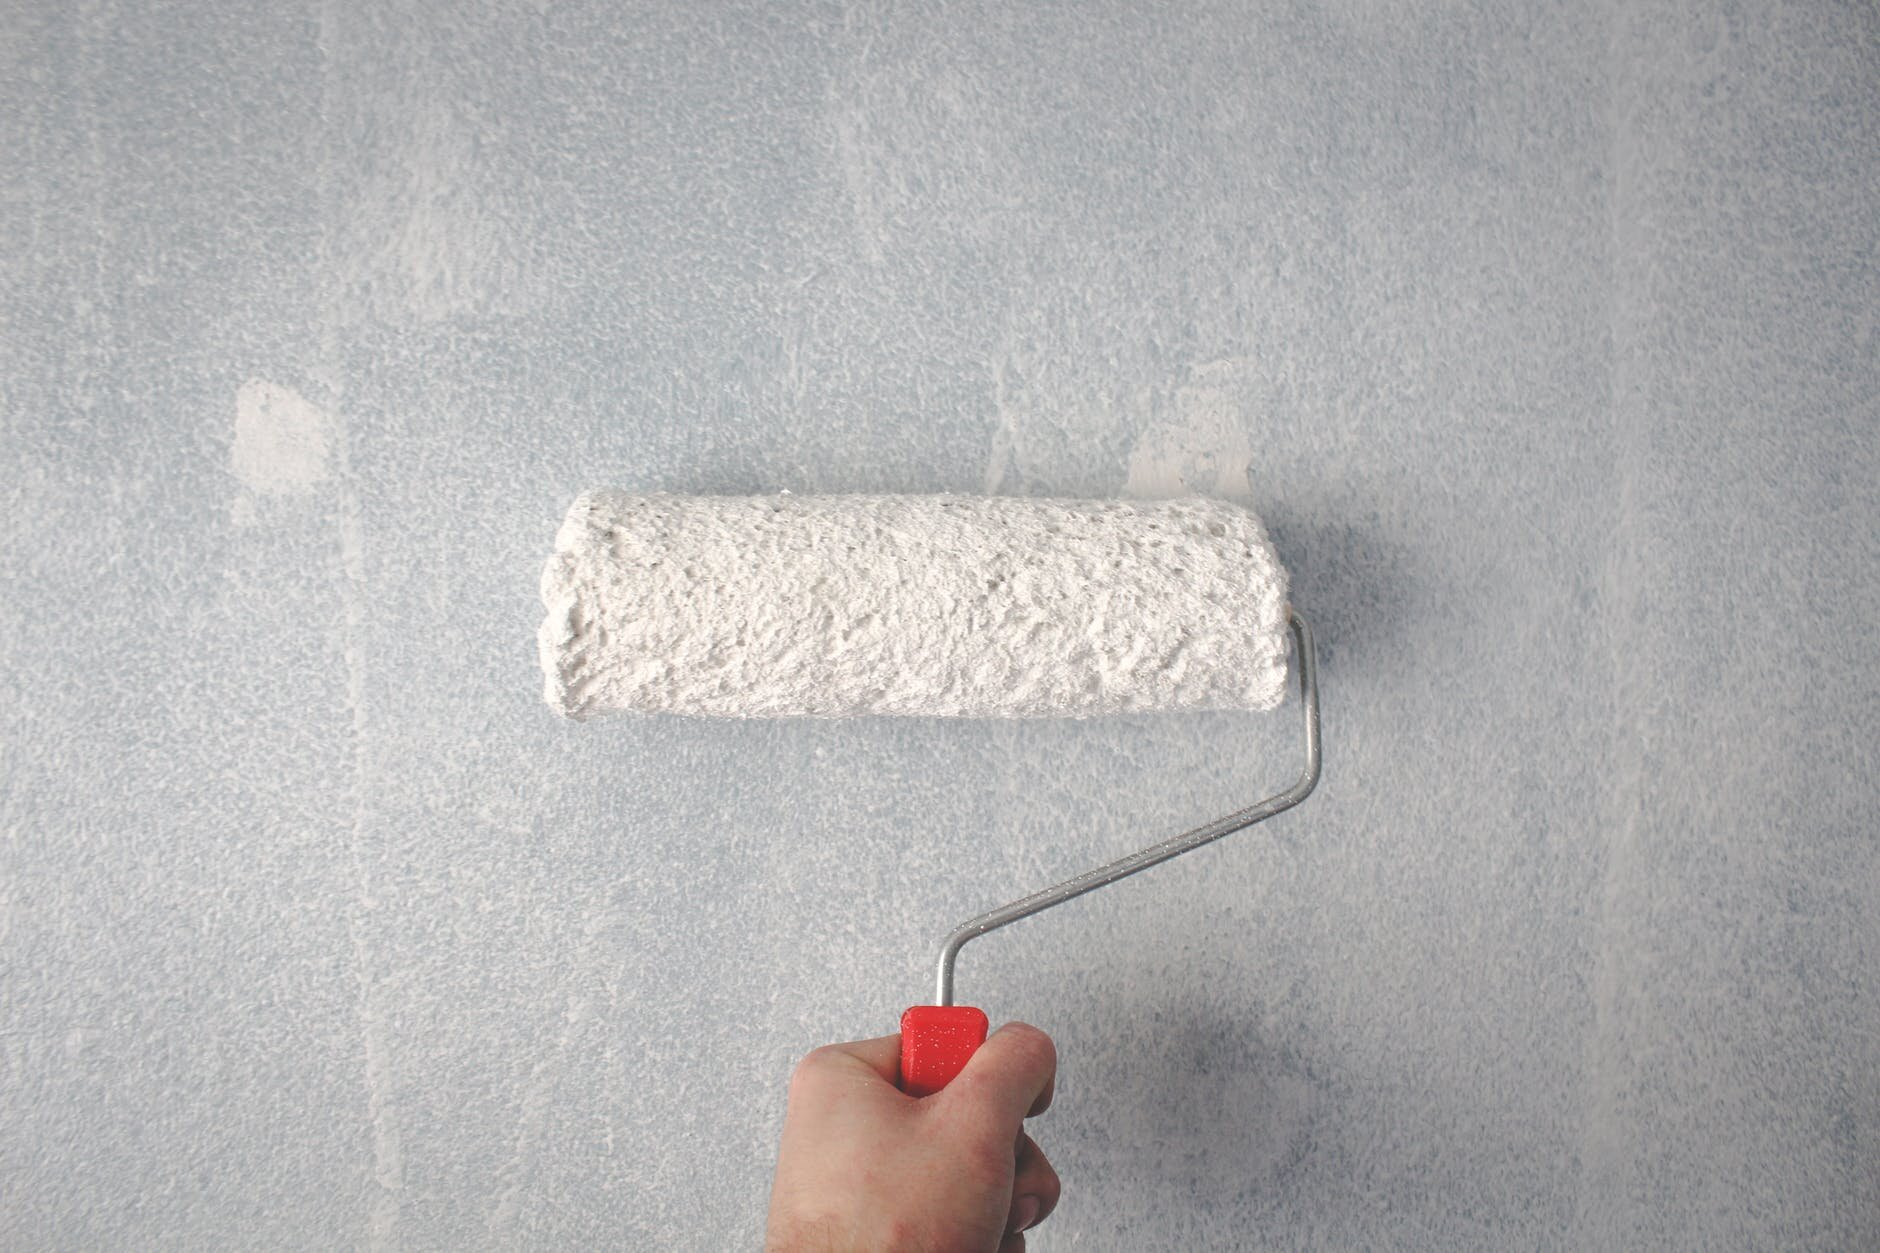 Clean & paint - Give your walls a fresh update while furniture is sparing & there is no possibility of breathing in the strong fumes. Perhaps give your doors & baseboards a new look while you're at it.